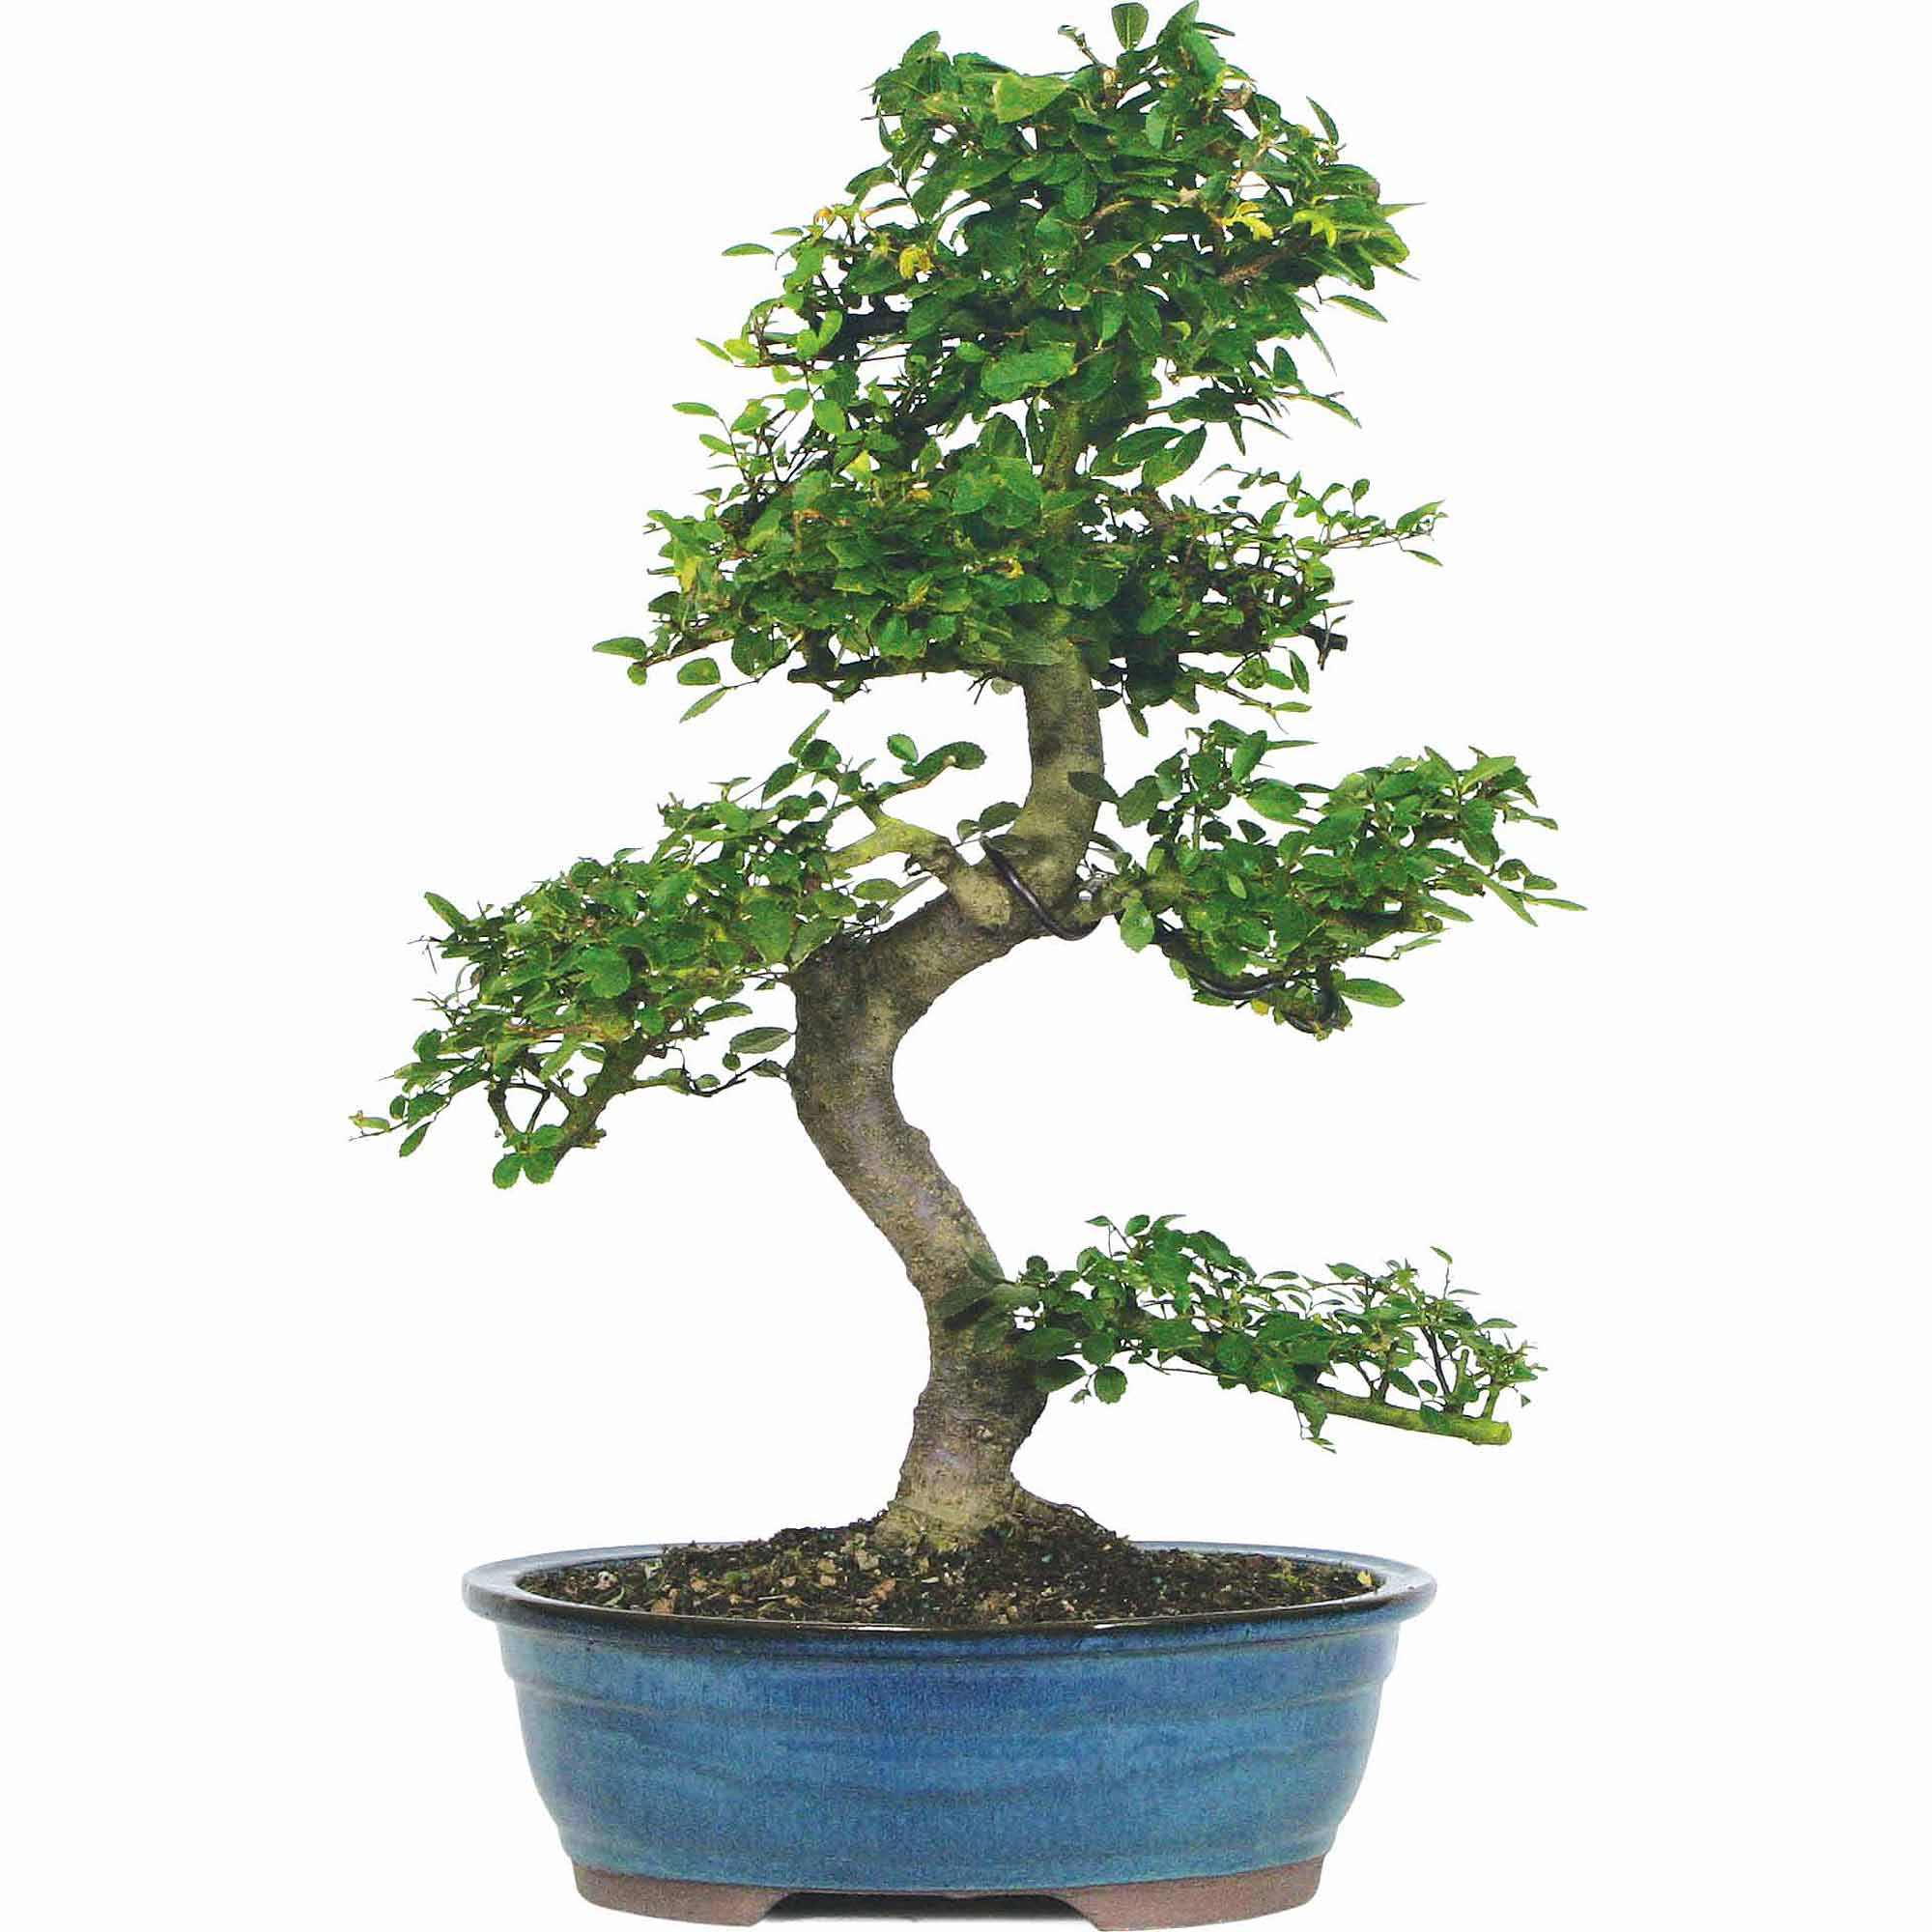 Chinese Elm Bonsai Tree by Brussel's Bonsai